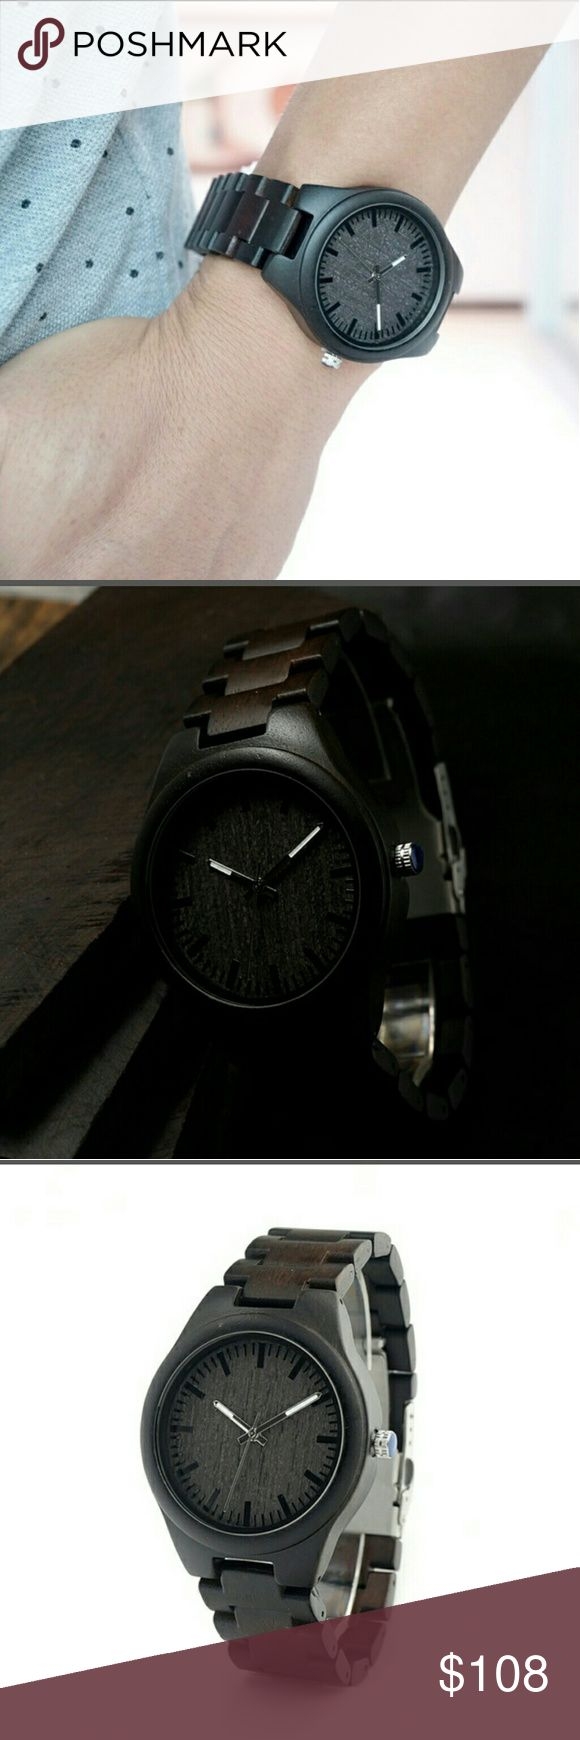 BOBO BIRD men's wrist watch, ebony This is a gorgeous man's watch, pictures don't do it justice,  has a nice gift box included, these are wood so no 2 are the same.   BOBO BIRD in natural wooden watches for men and women, handcrafted with ancient Asian sustainable wood ,including teak, ebony, maple and even bamboo. These trees are hand selected by our expert craftsmen to ensure the exceptional quality of our wooden wrist watches. It takes up to 3days to produce each unique handcrafted watch…